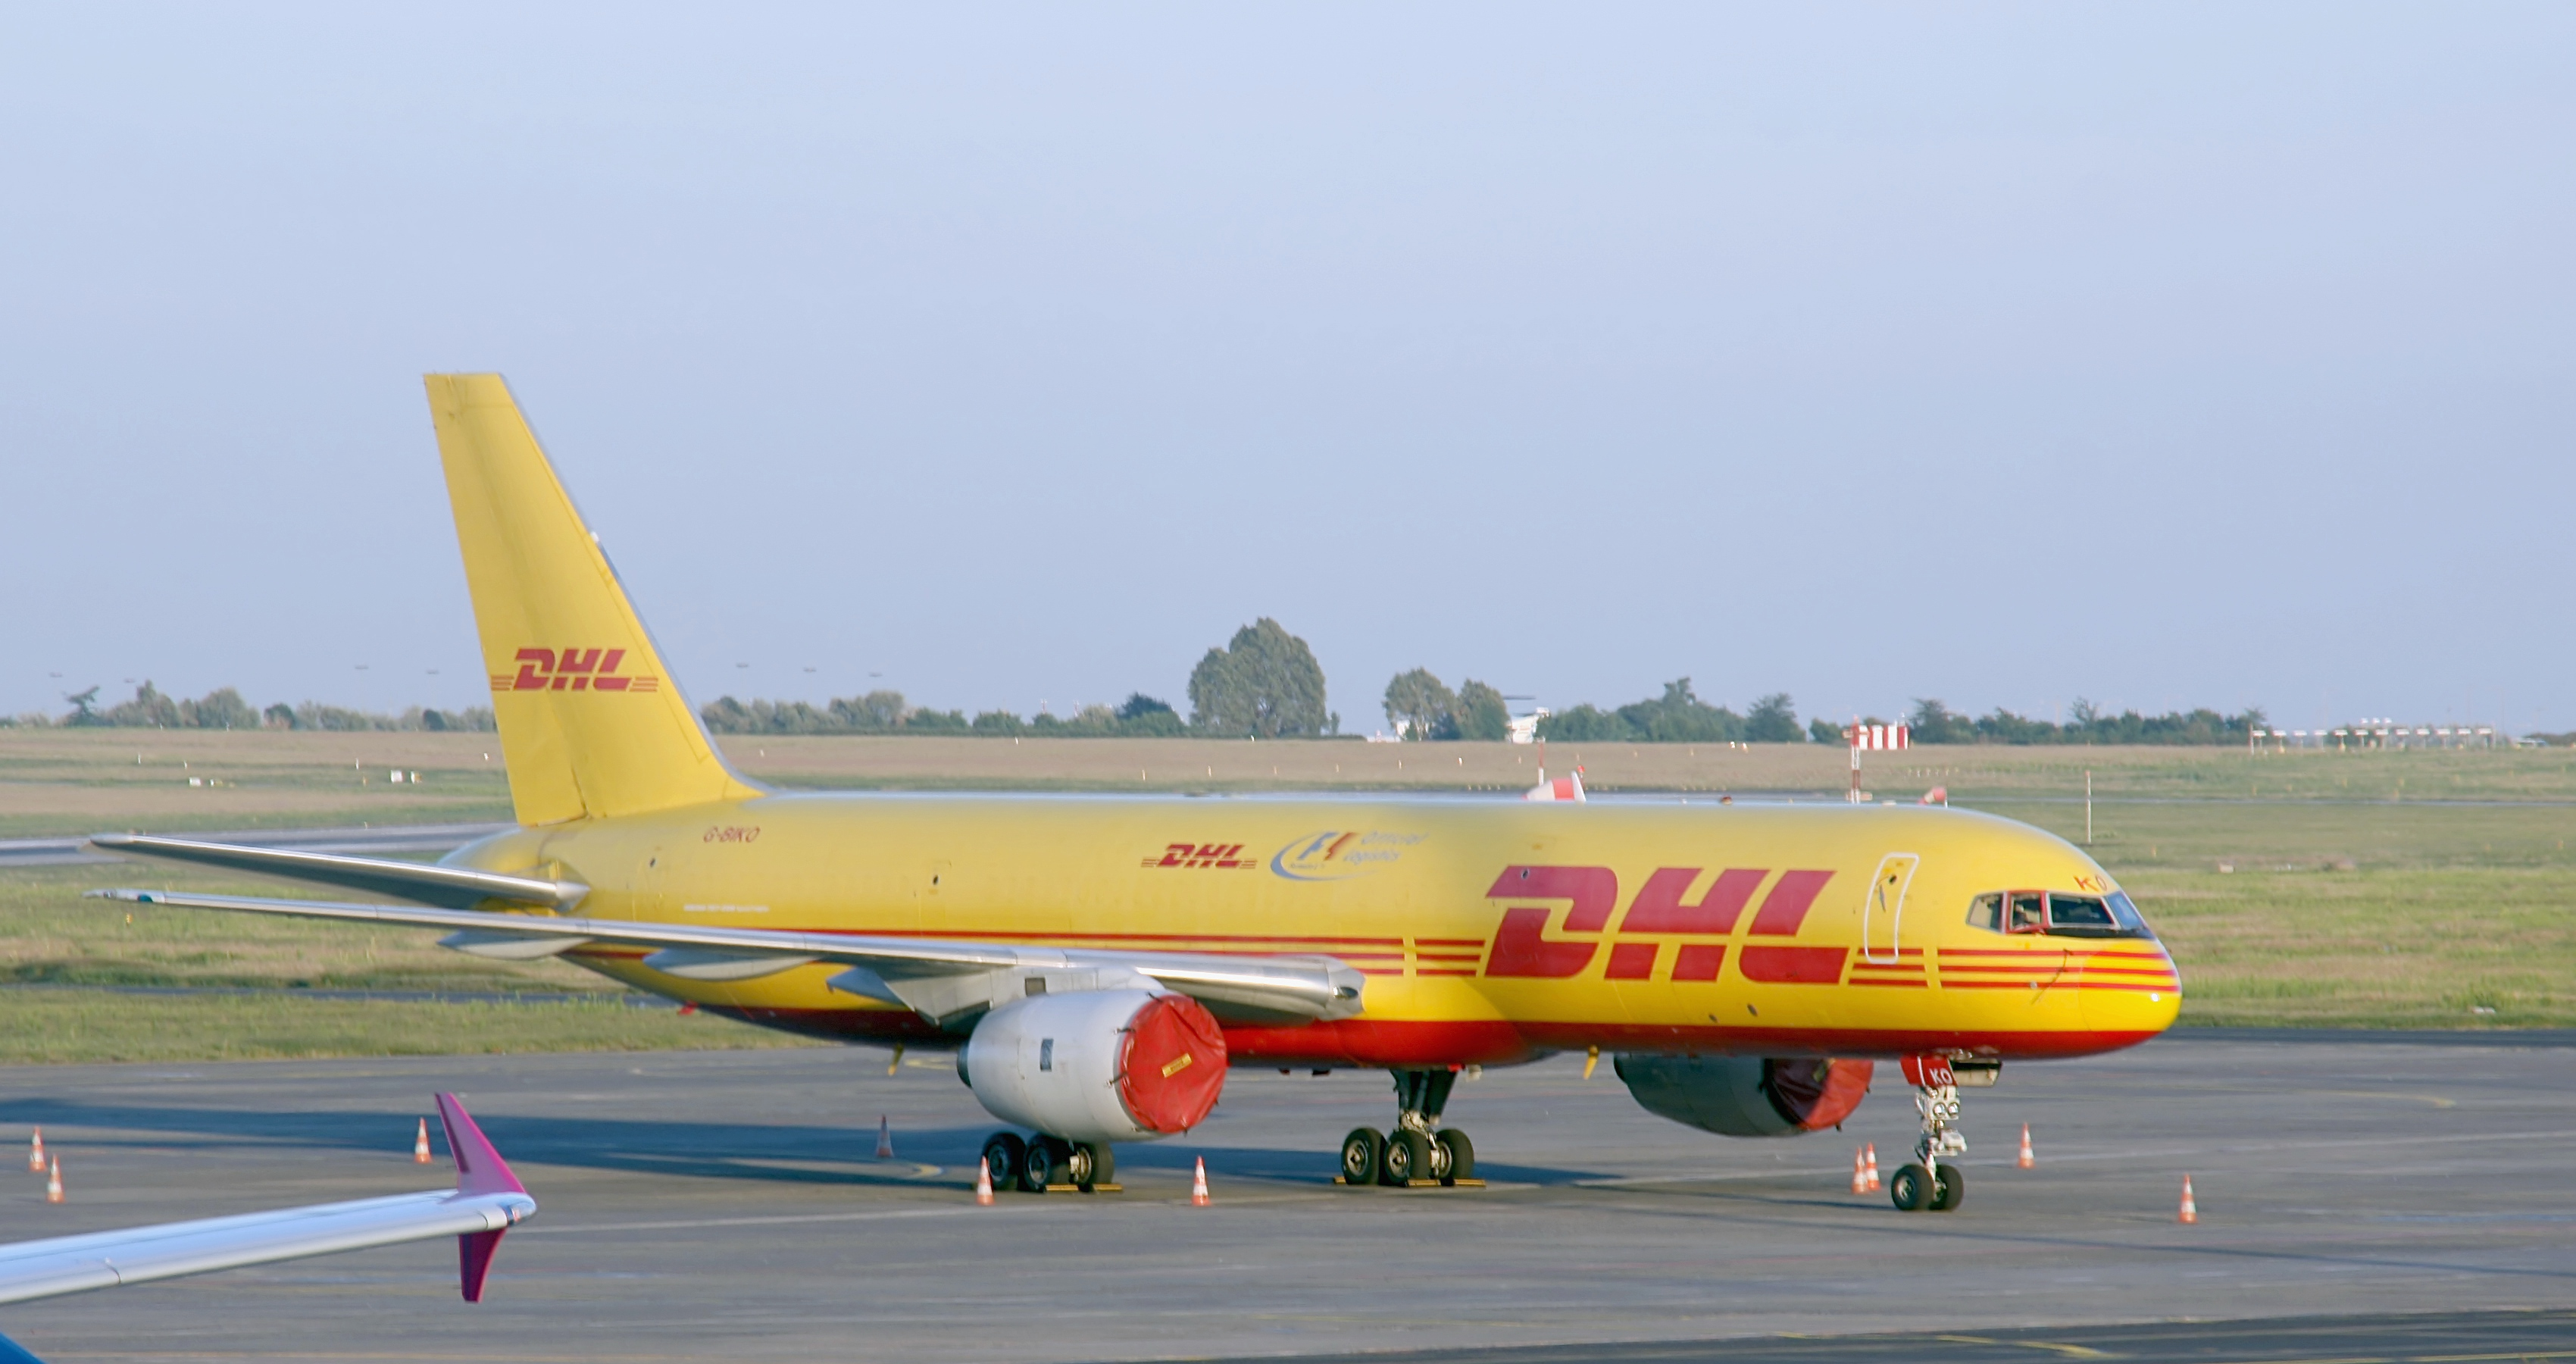 https://upload.wikimedia.org/wikipedia/commons/2/26/DHL_Air_UK_-_Boeing_757-236(SF)_-_G-BIKO_-_Airport_Budapest_(6229).jpg